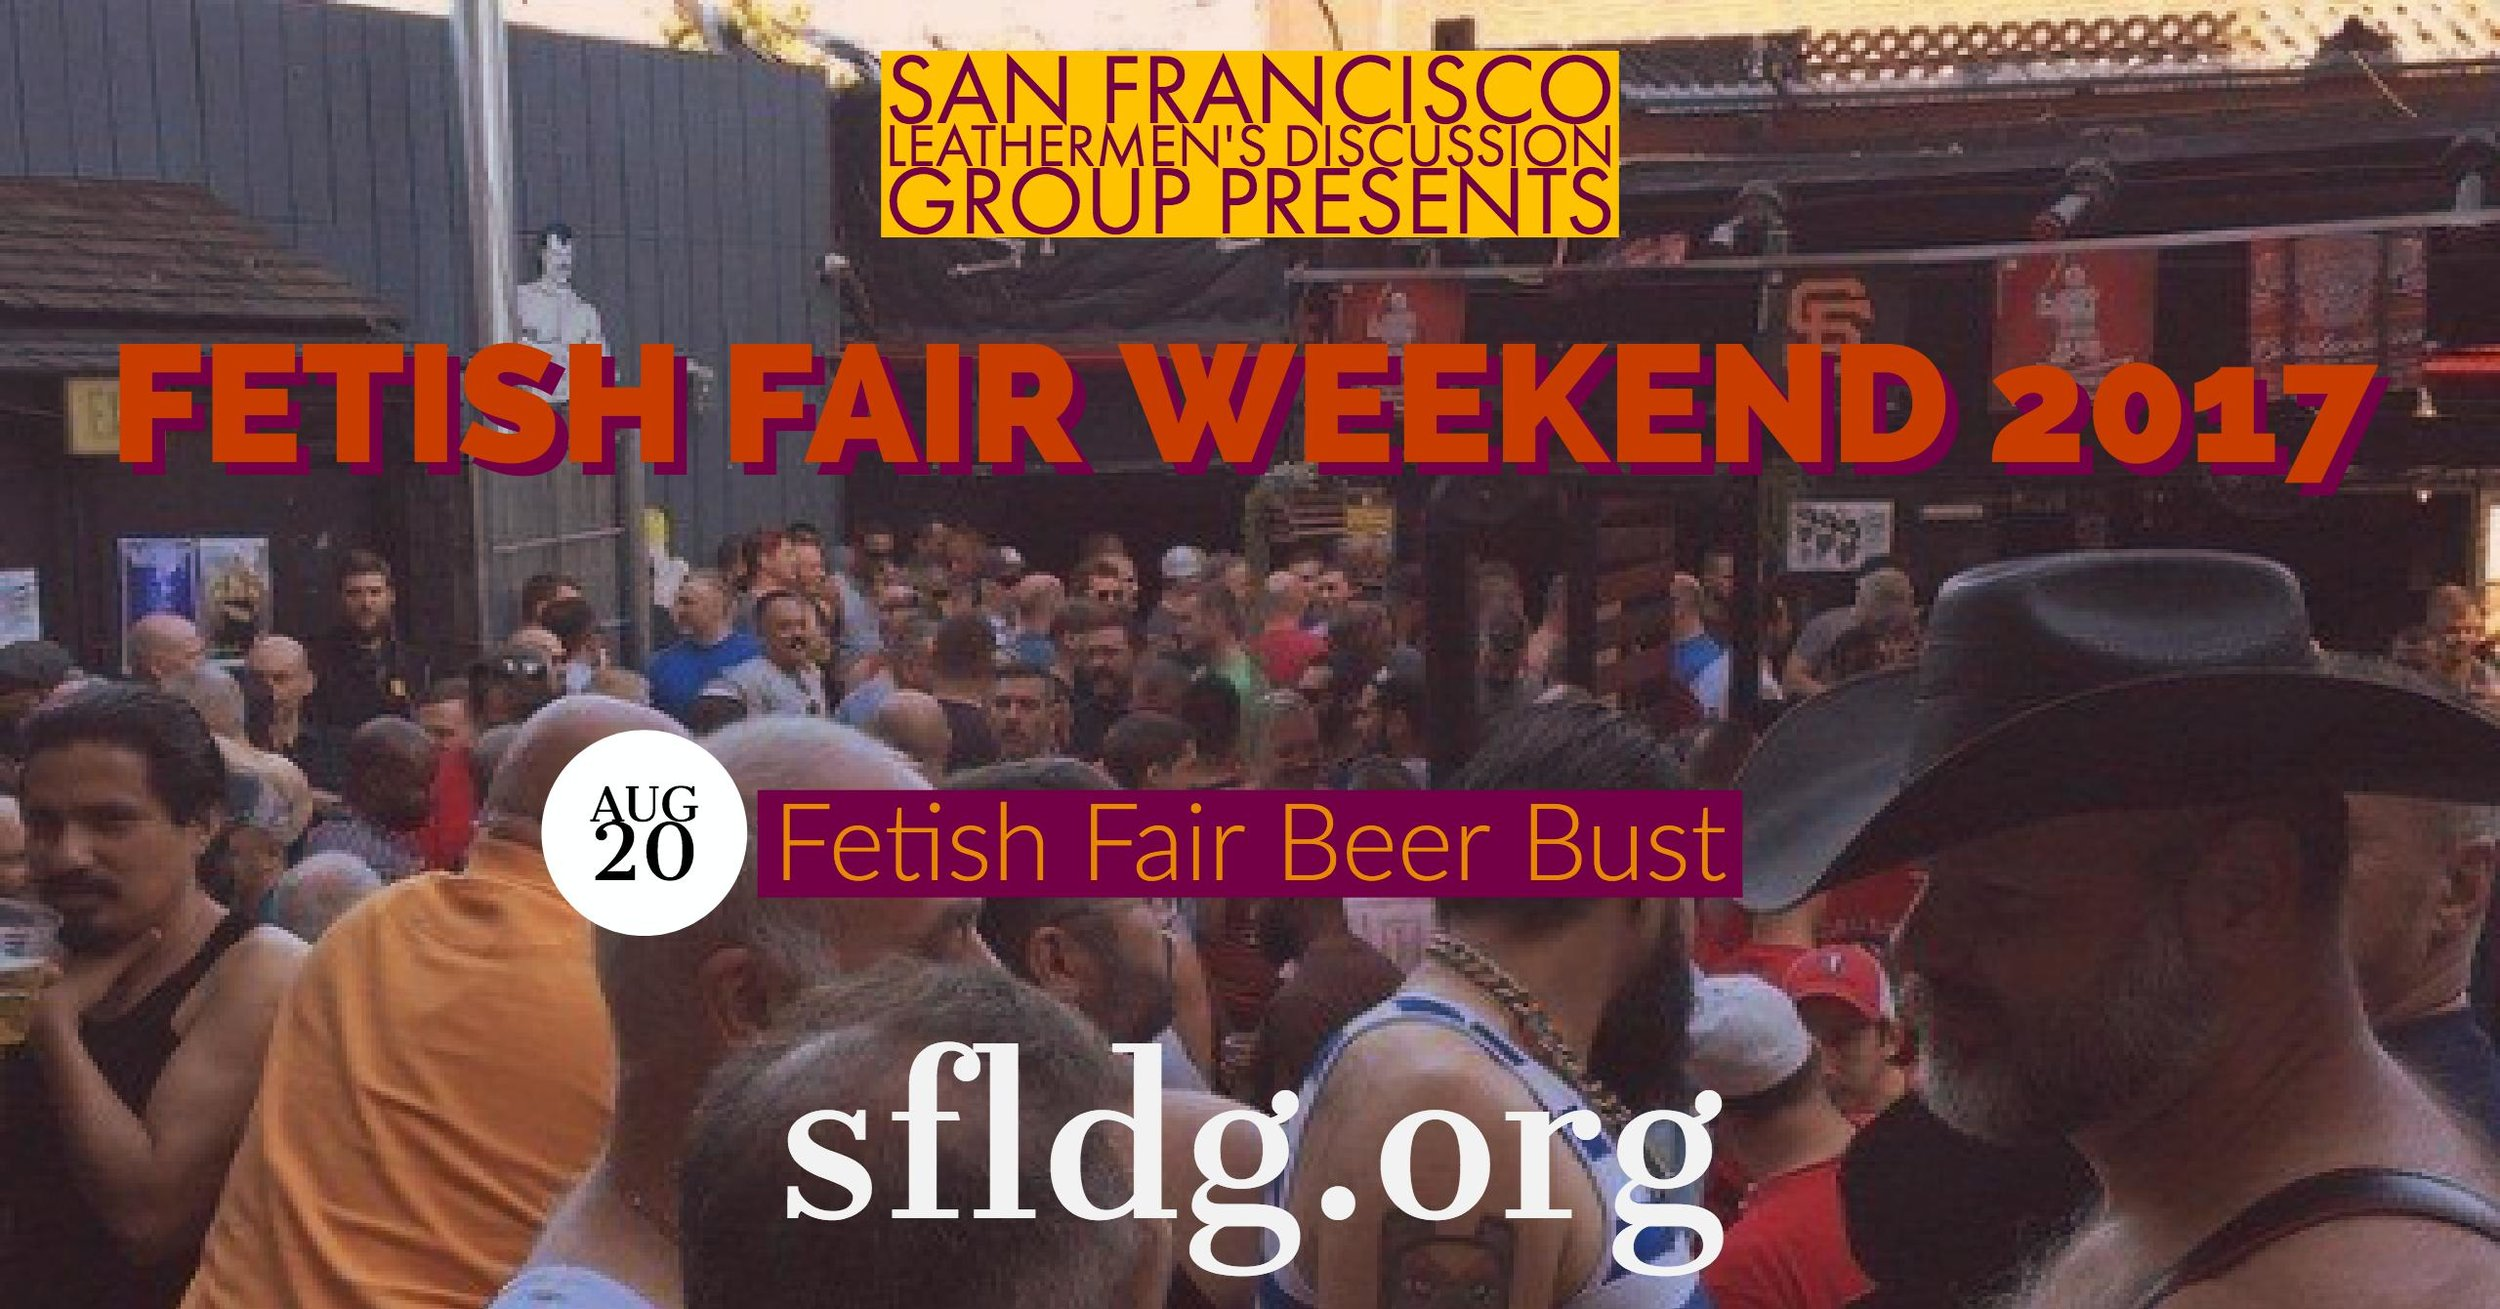 LDG Fetish Fair Beer Bust   Sunday, August 20 at 3 PM - 6 PM  SF Eagle - 398 12th St, San Francisco, California 94103   https://www.facebook.com/events/324399494653192/   LDG Beer Bust Fundraiser. Come enjoy our annual Beer Bust with jello shots, food and the sexy men of LDG & YLDG. This is a fundraiser for SF Leathermen's Discussion Group. Plan to end your Fetish Fair Weekend with this great event. See you there!